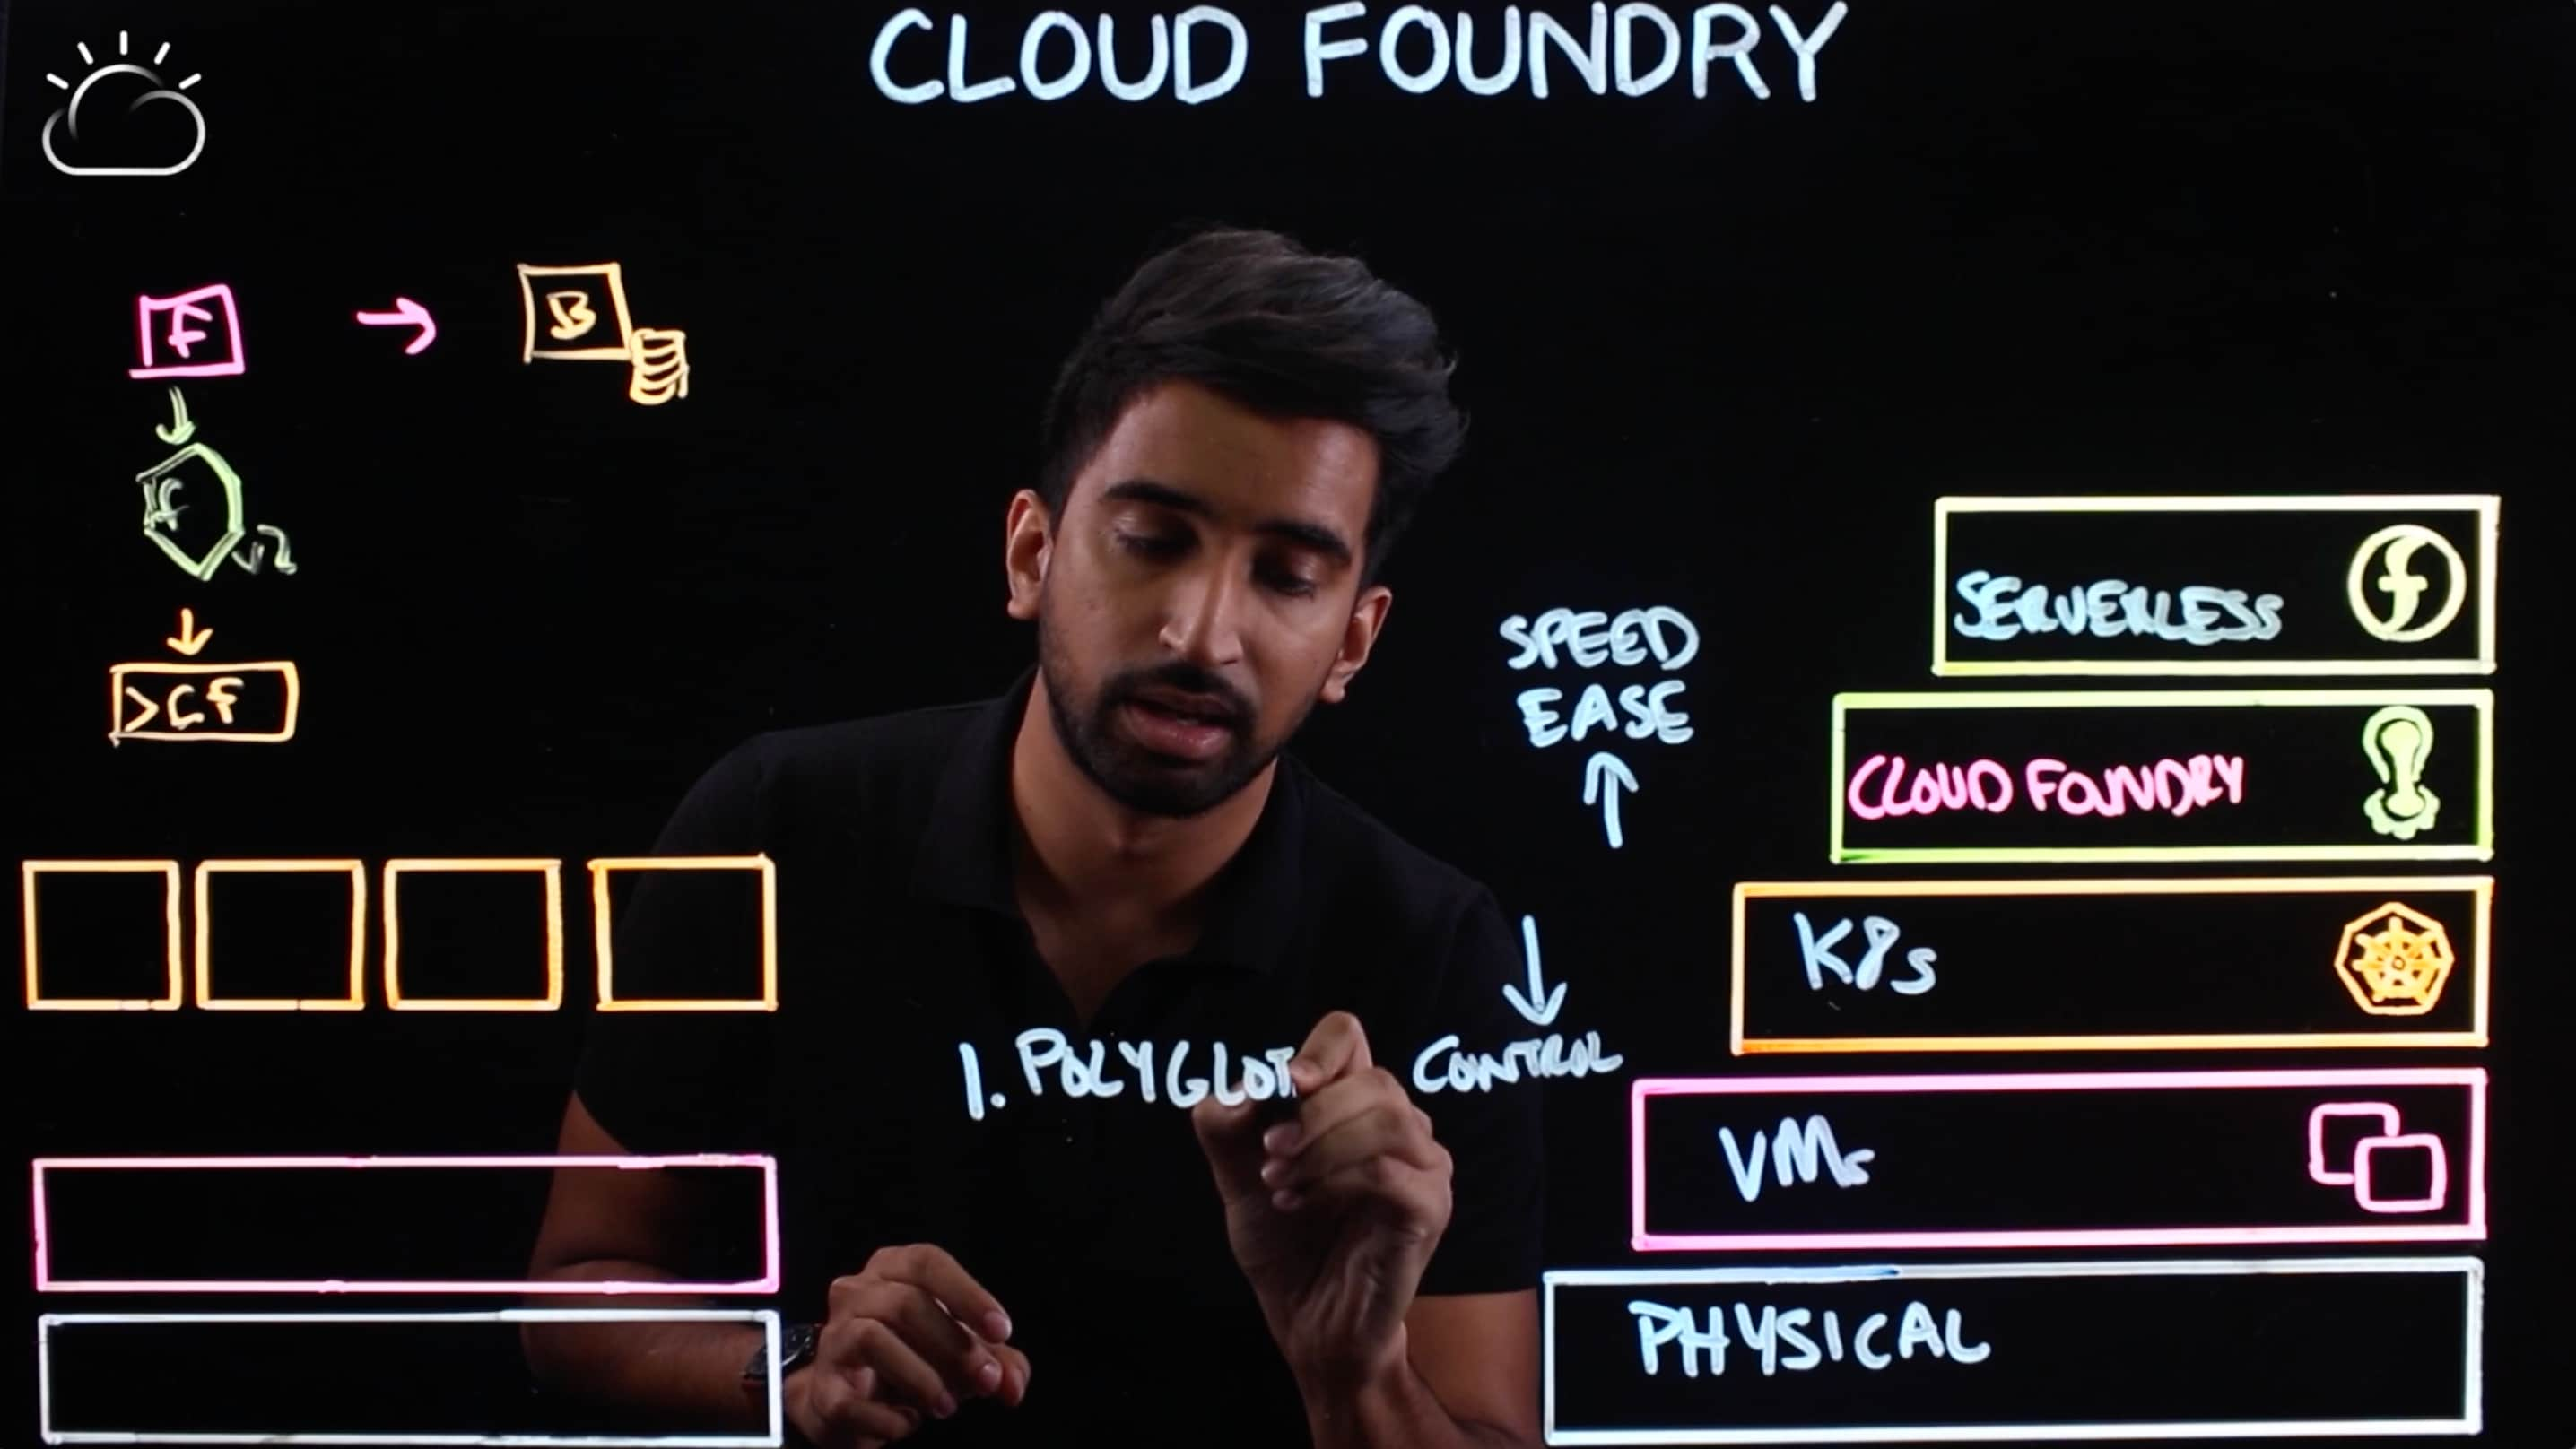 Cloud Foundry is a polyglot environment